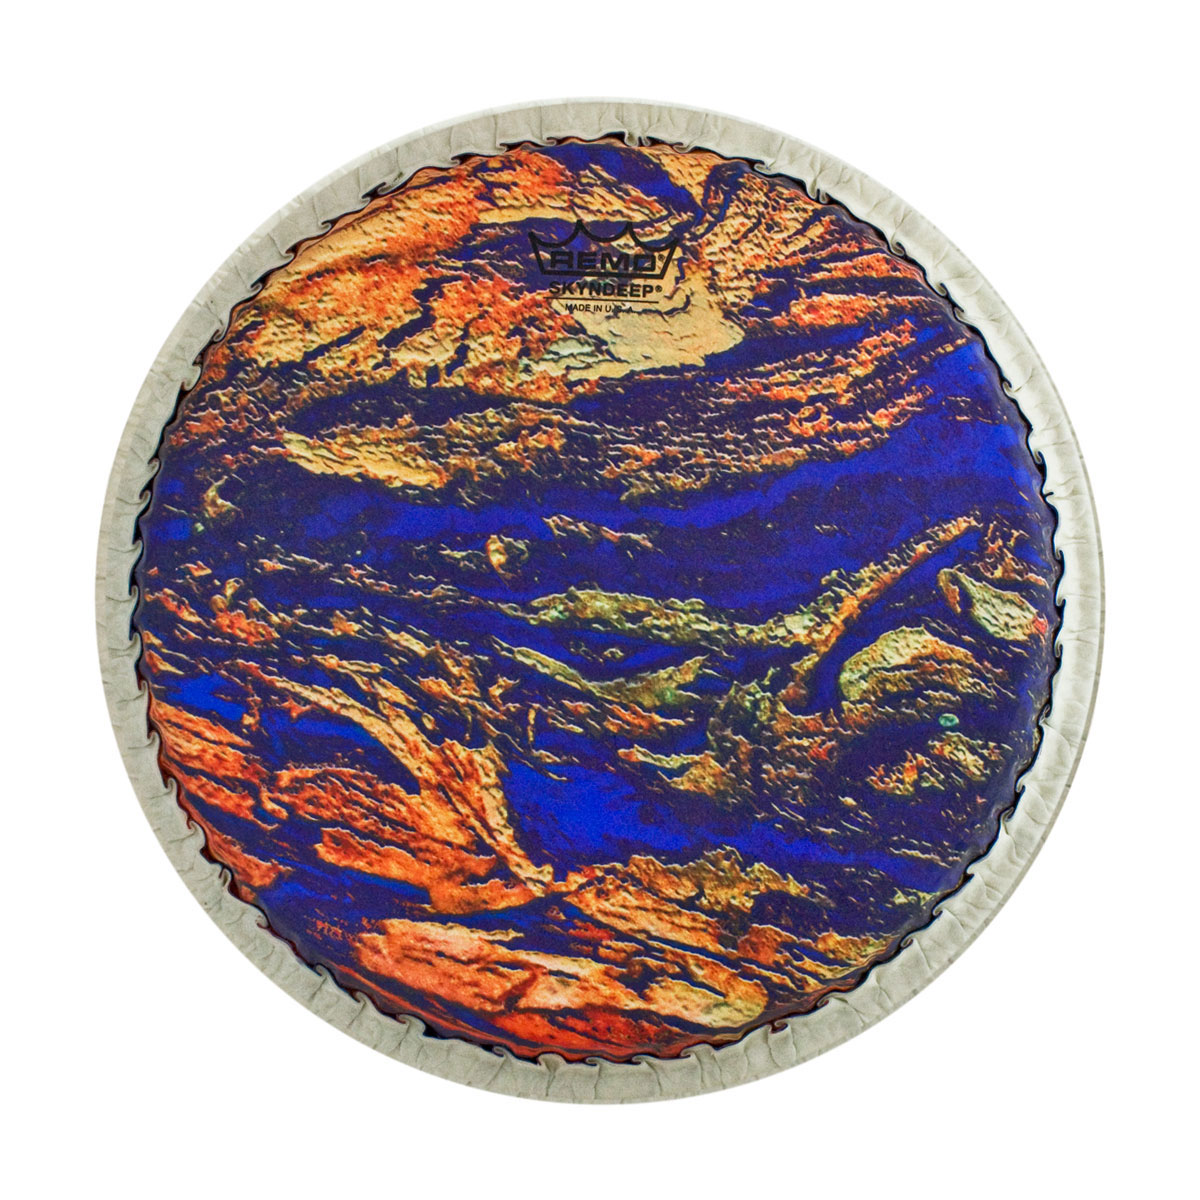 "Remo 8.5"" Tucked Skyndeep Bongo Drum Head with Molten Sea Graphic"